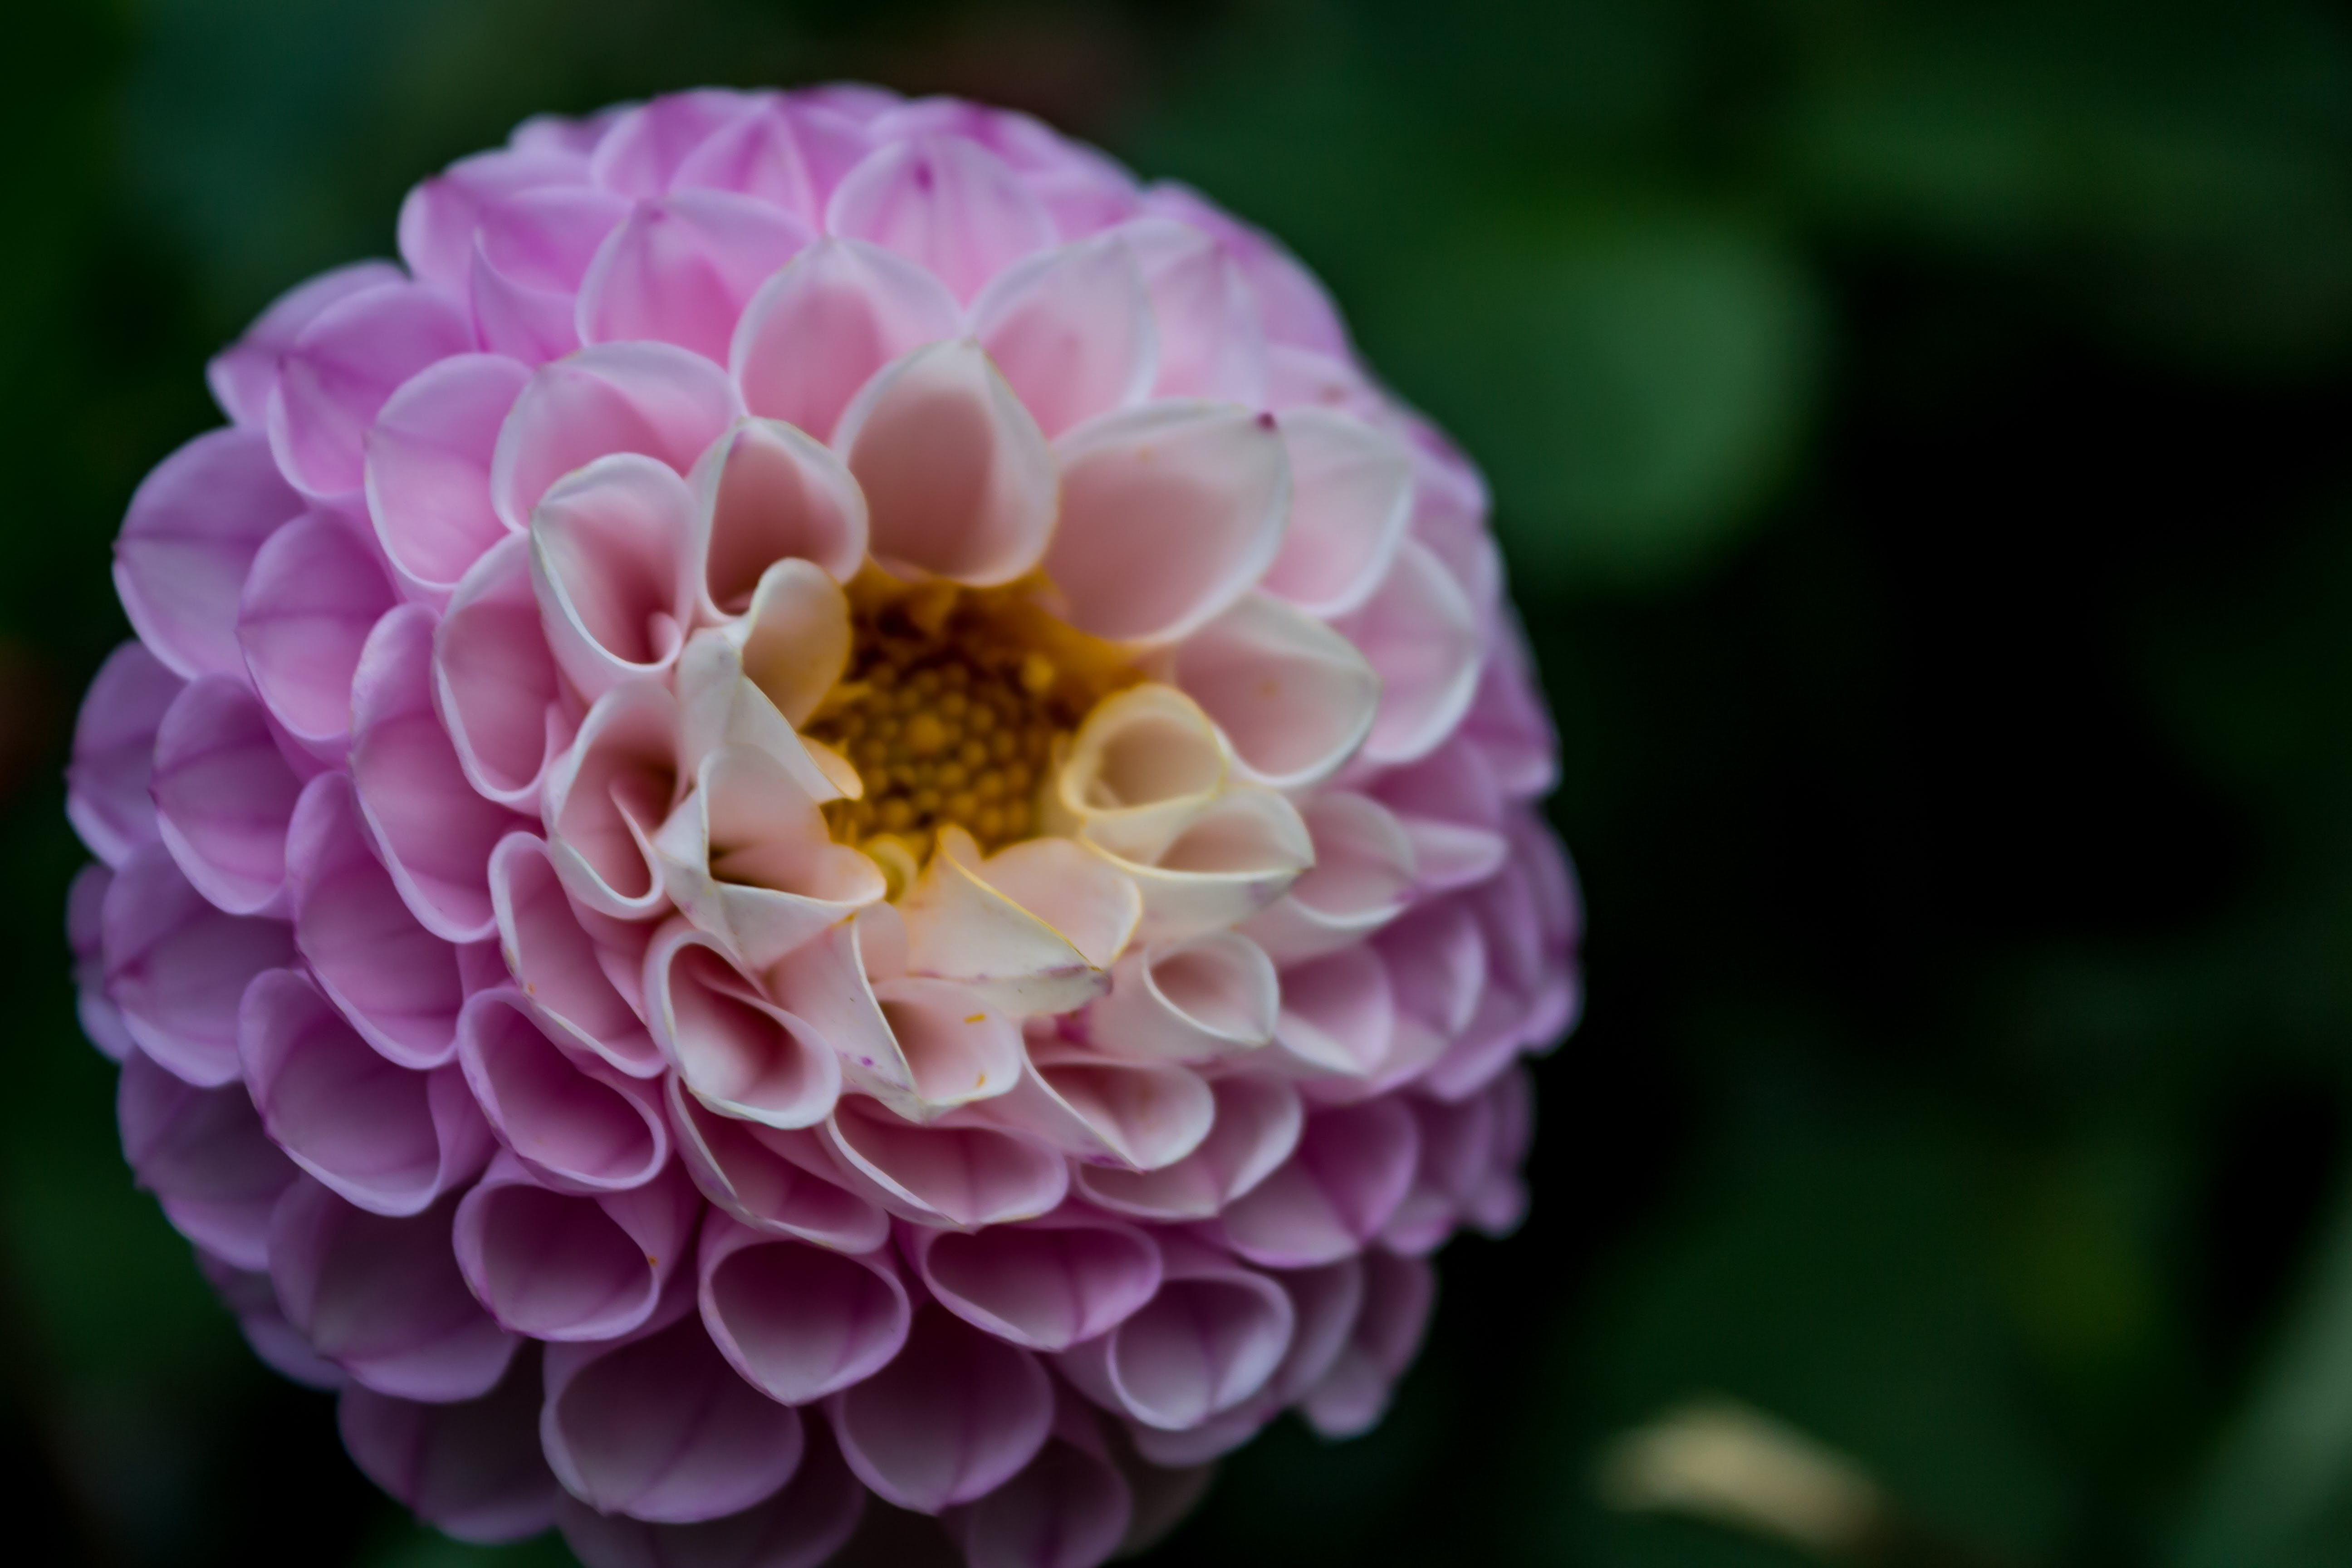 Close-up Photo of Pink Flower